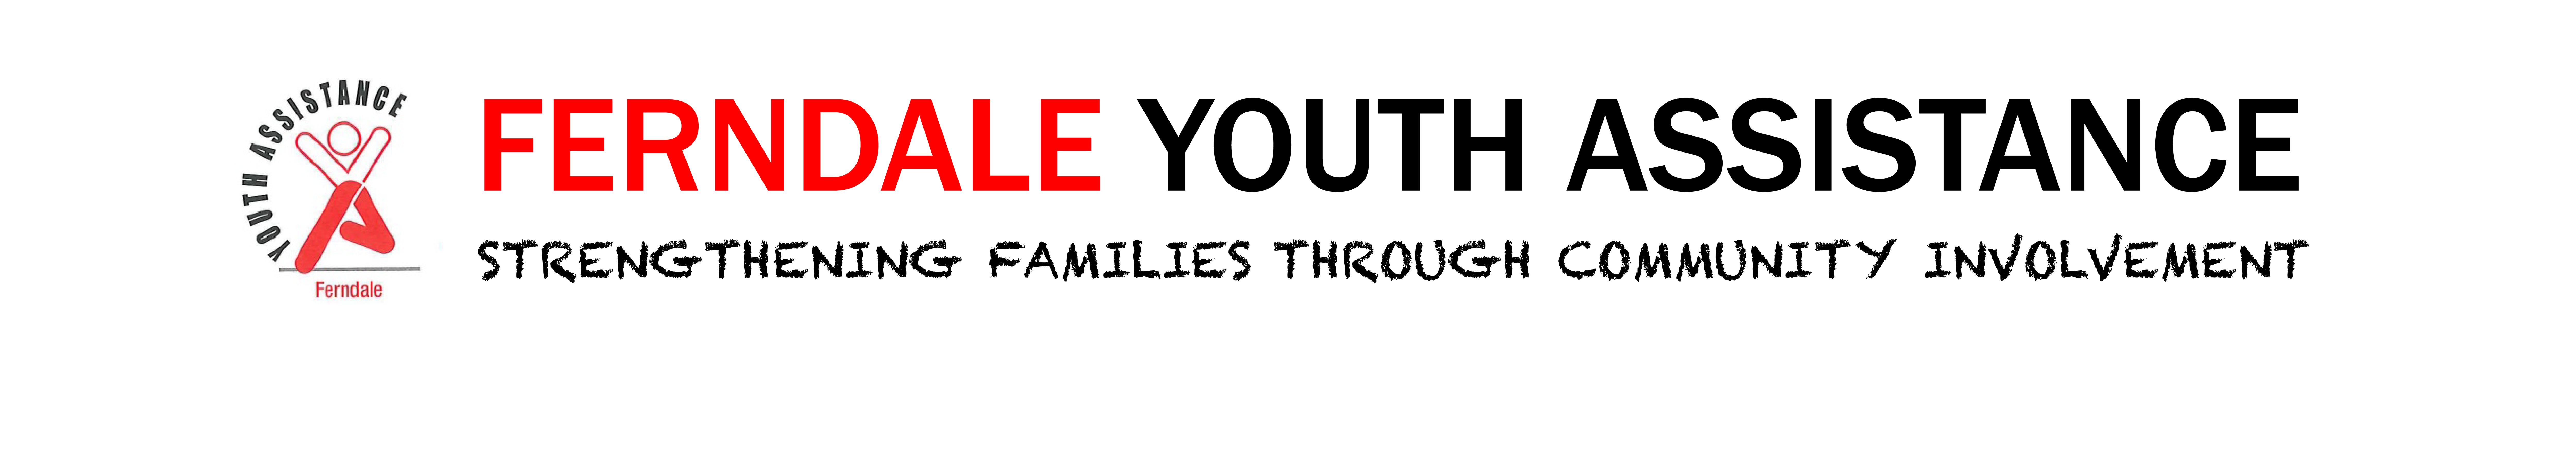 Ferndale Youth Assistance